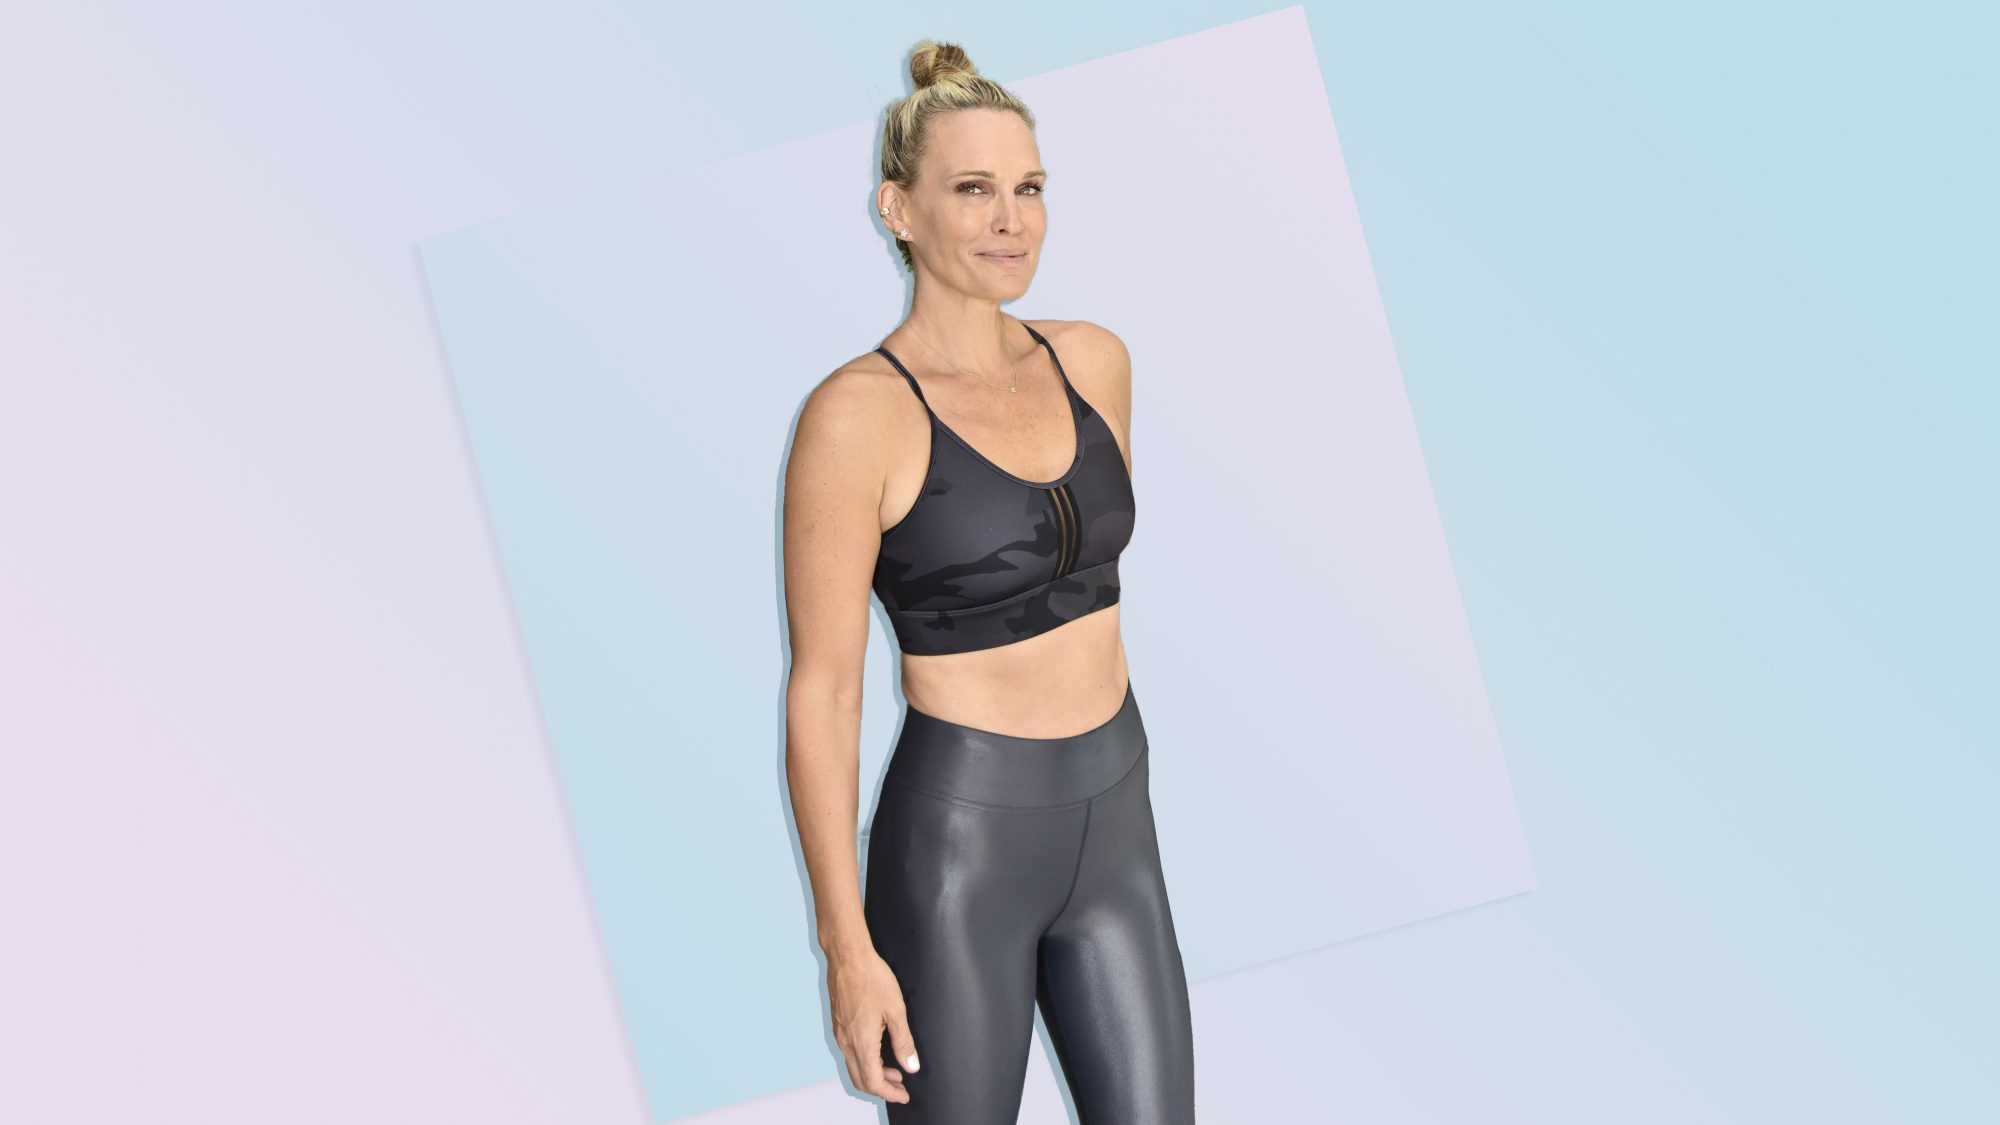 molly-sims-workout